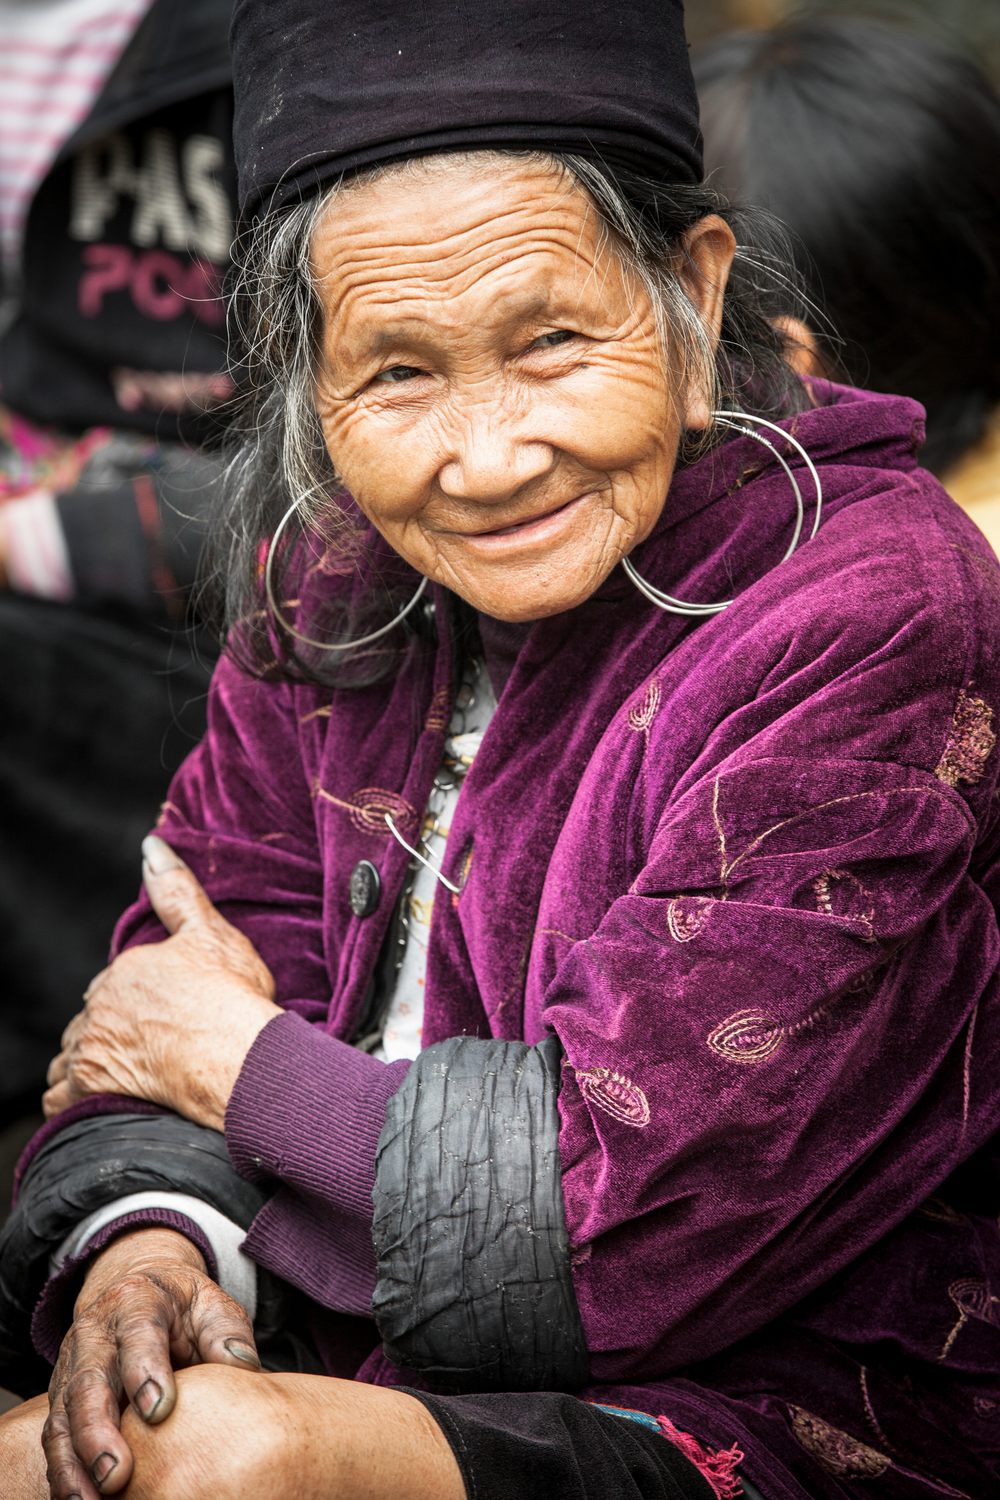 Photo: Black Hmong Woman in Vietnam © Eermakova | Dreamstime.com